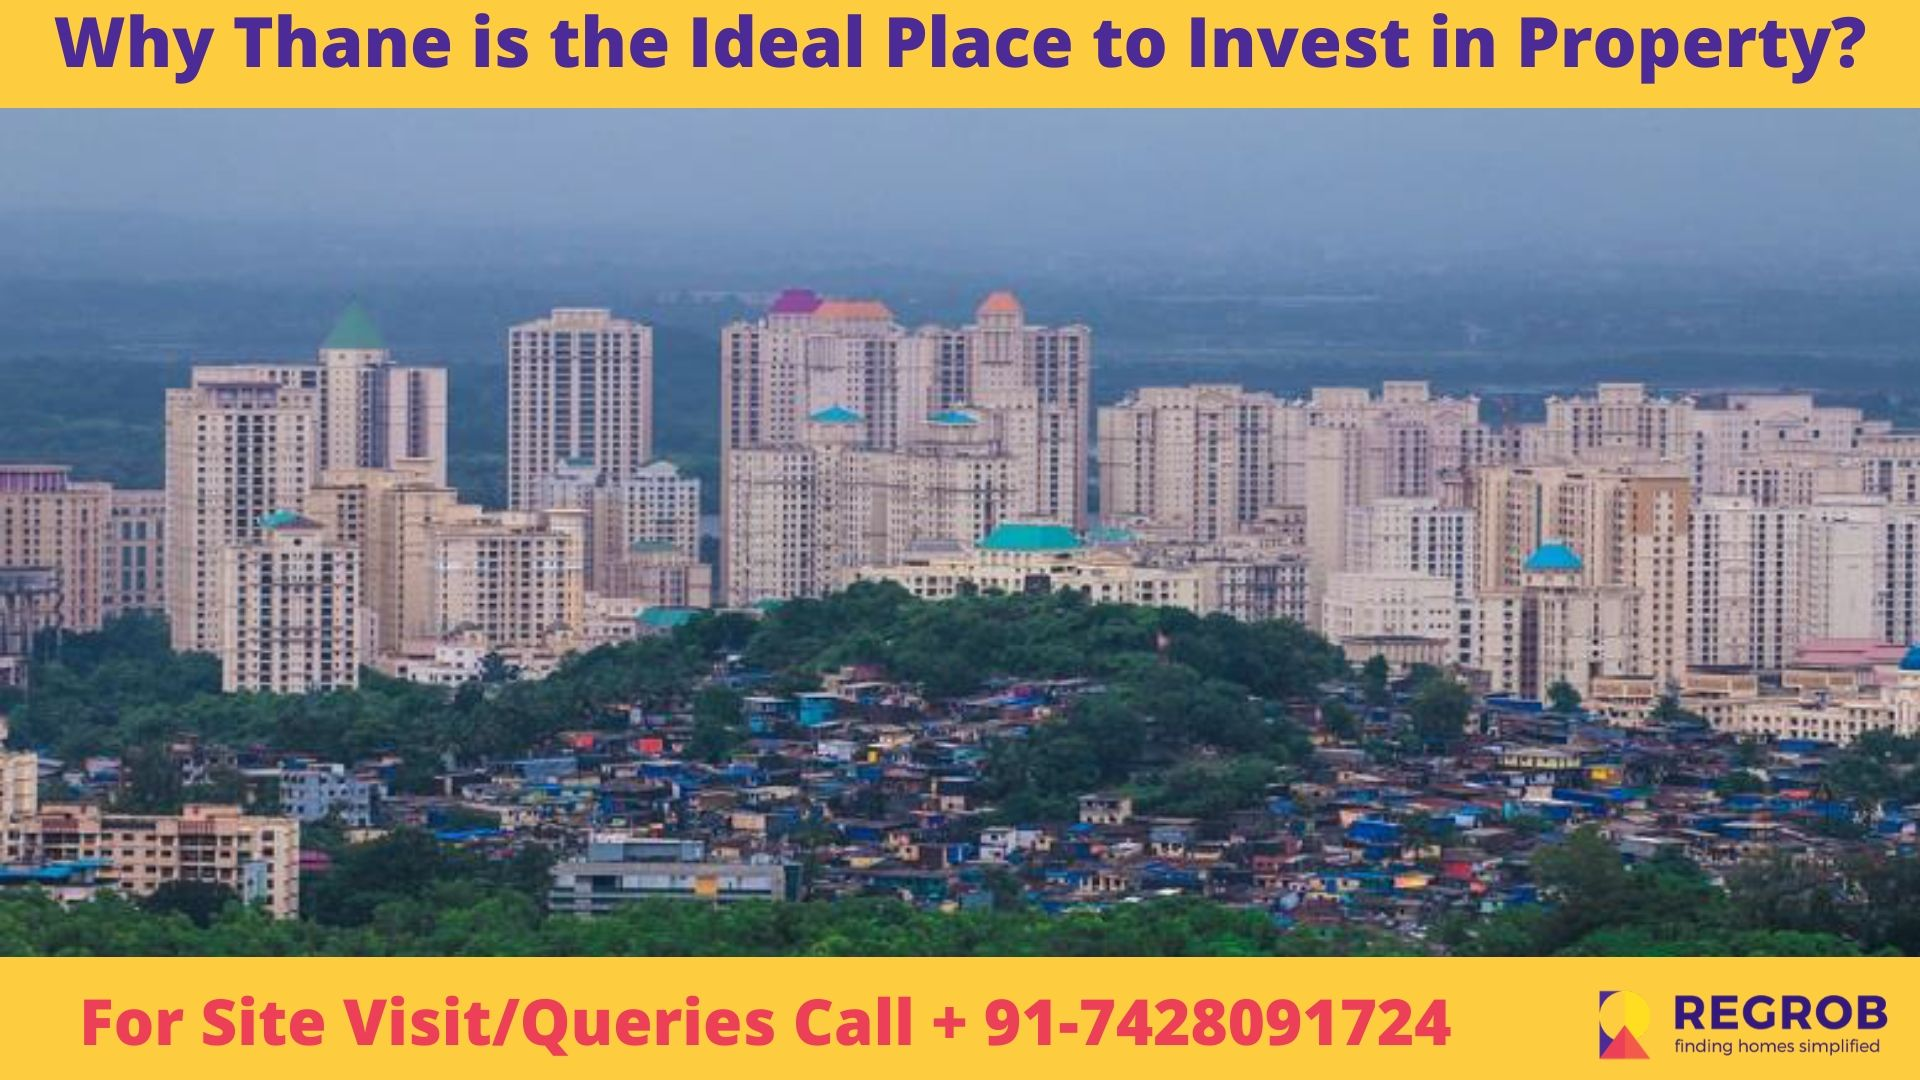 Why Thane is the Ideal Place to Invest in Property 2